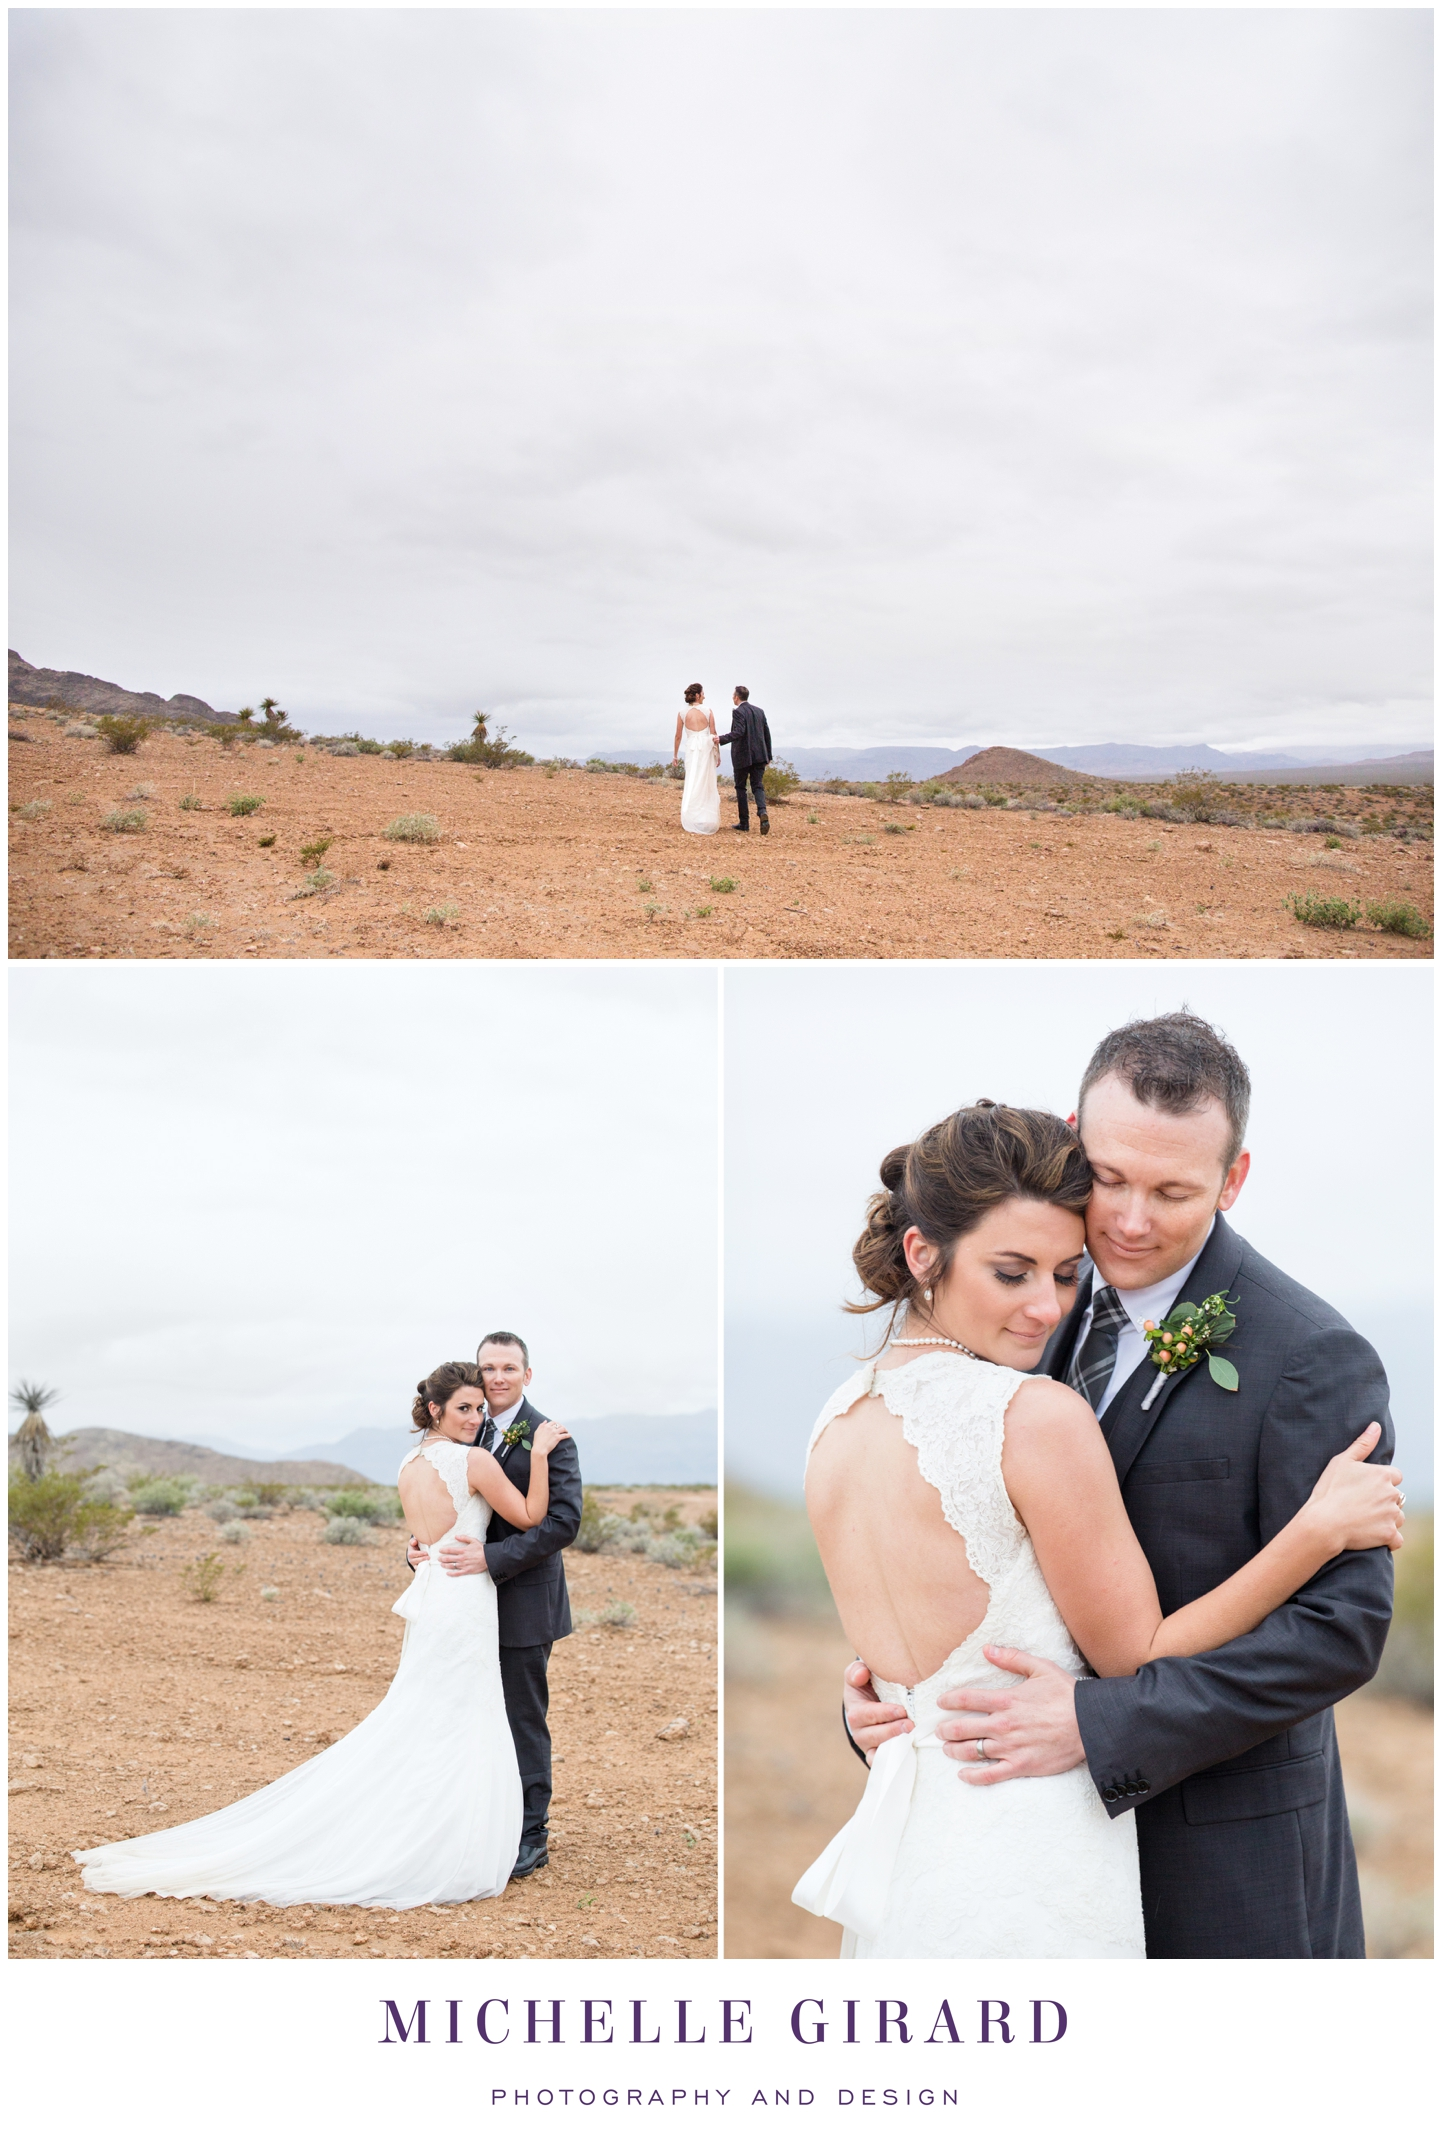 las-vegas-desert-wedding-bride-groom-photography-nevada-michelle-girard-22.jpg